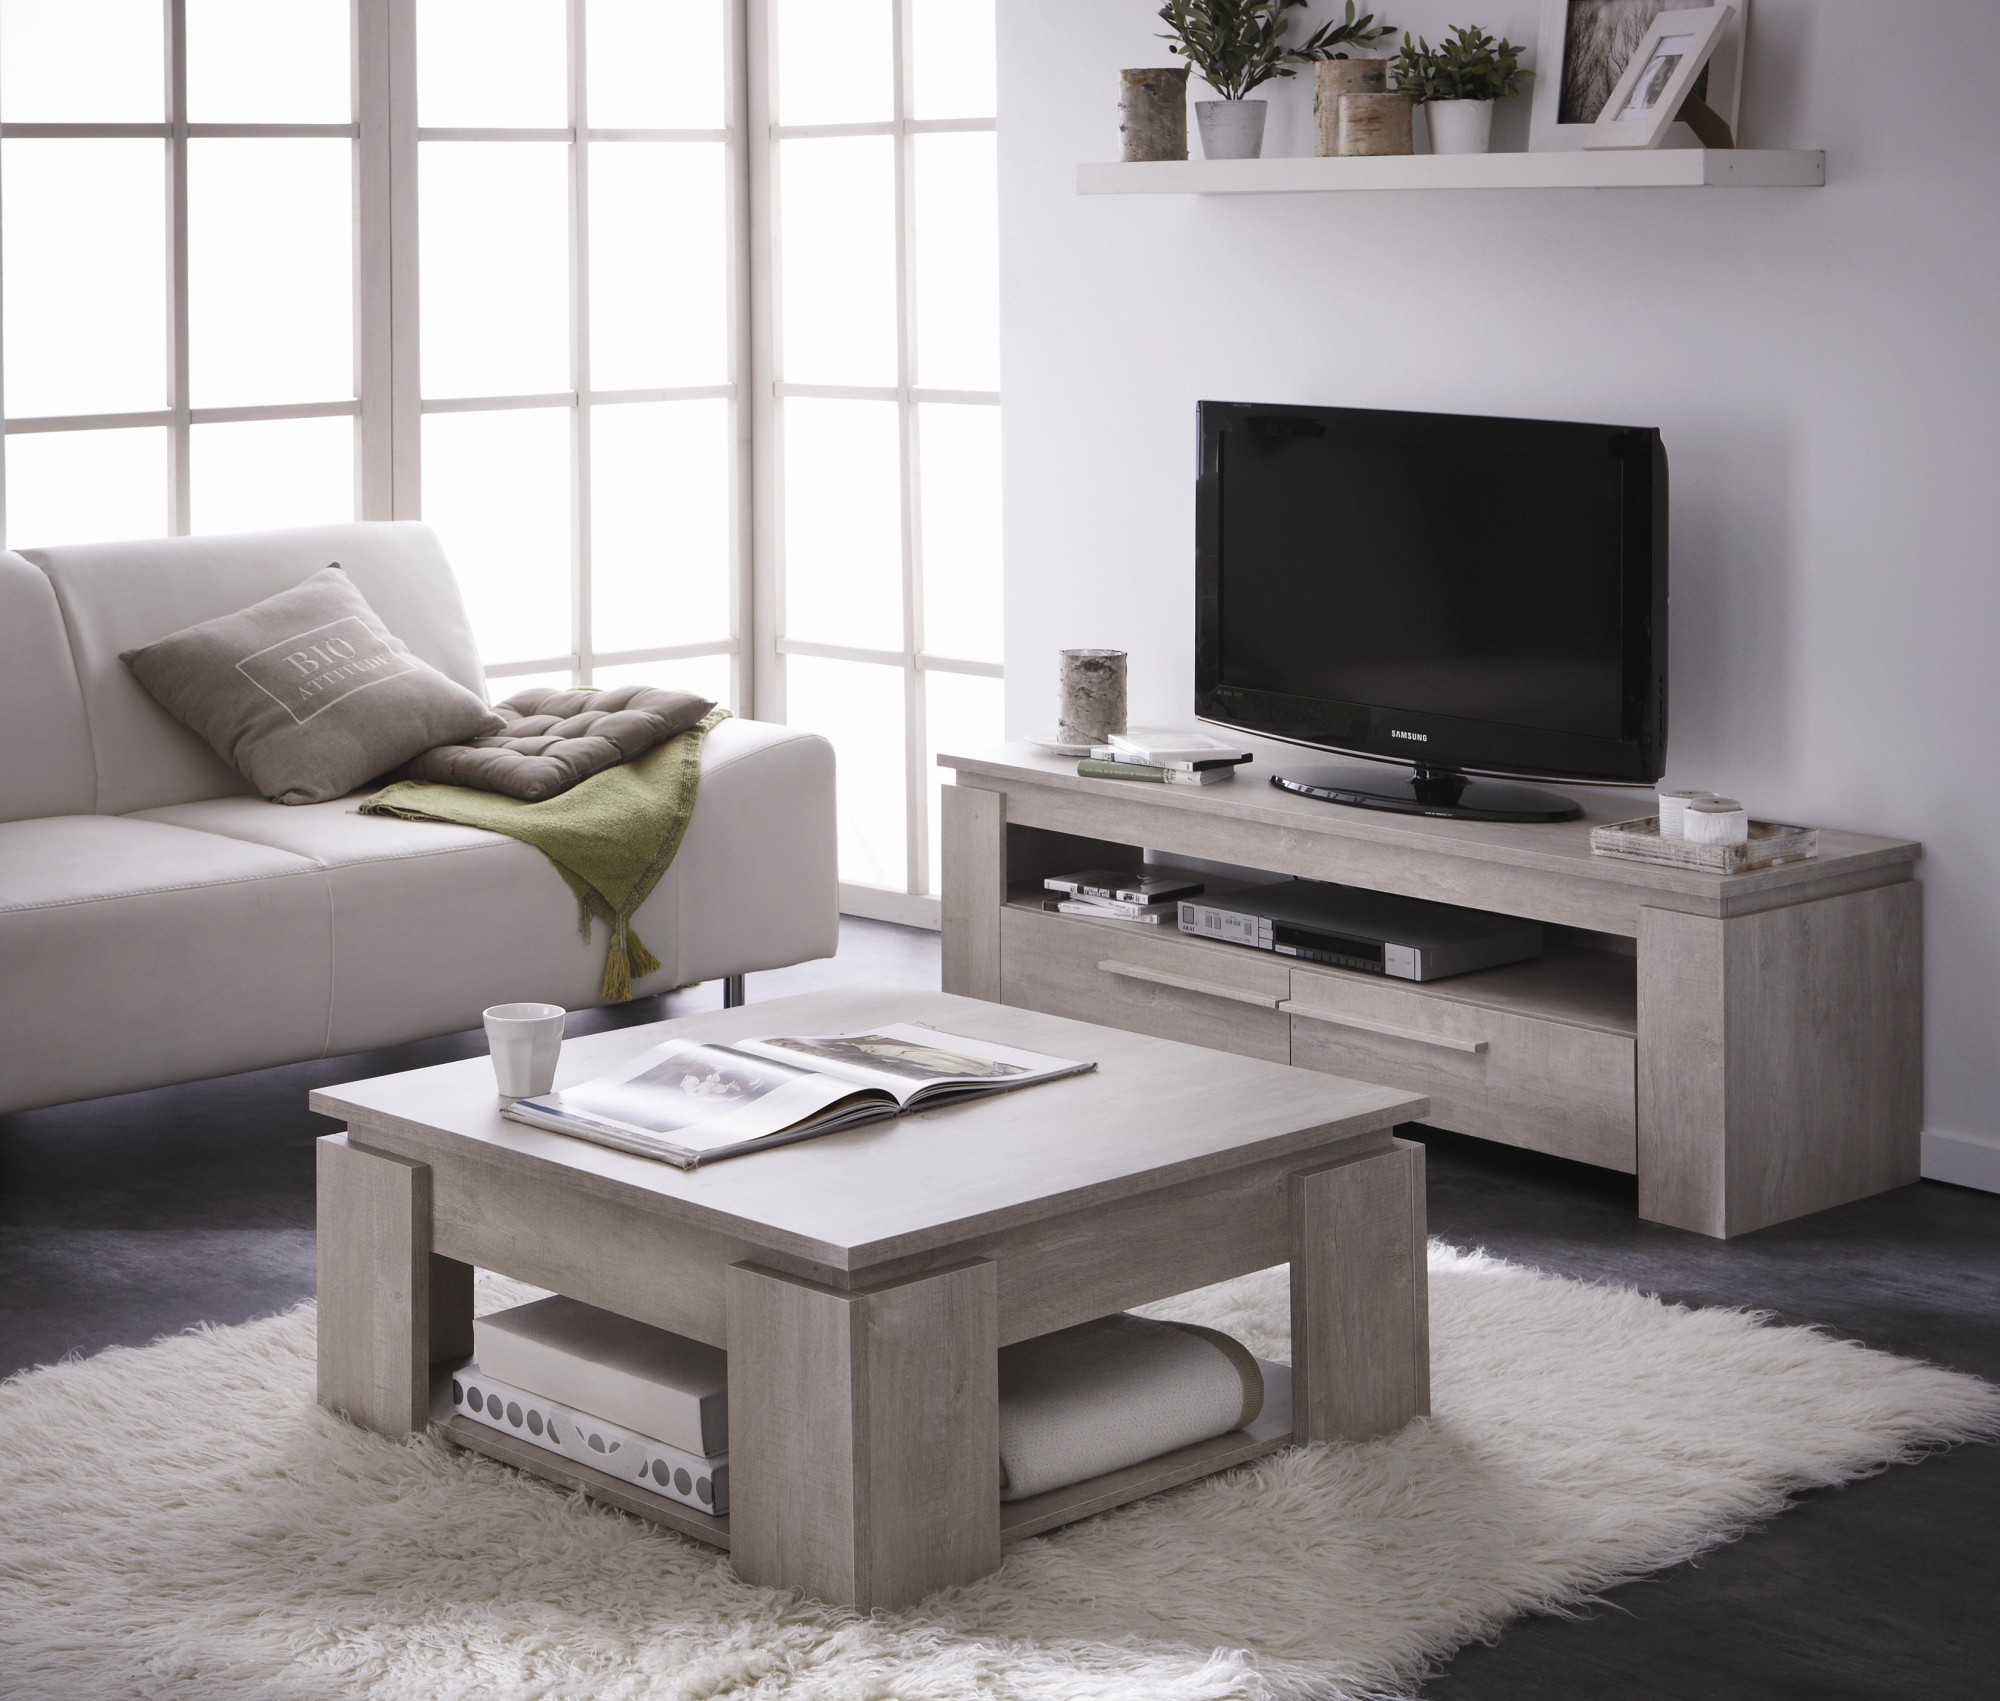 Meuble Tv Taupe Id Es De D Coration Int Rieure French Decor # Meuble Tv Gris Taupe